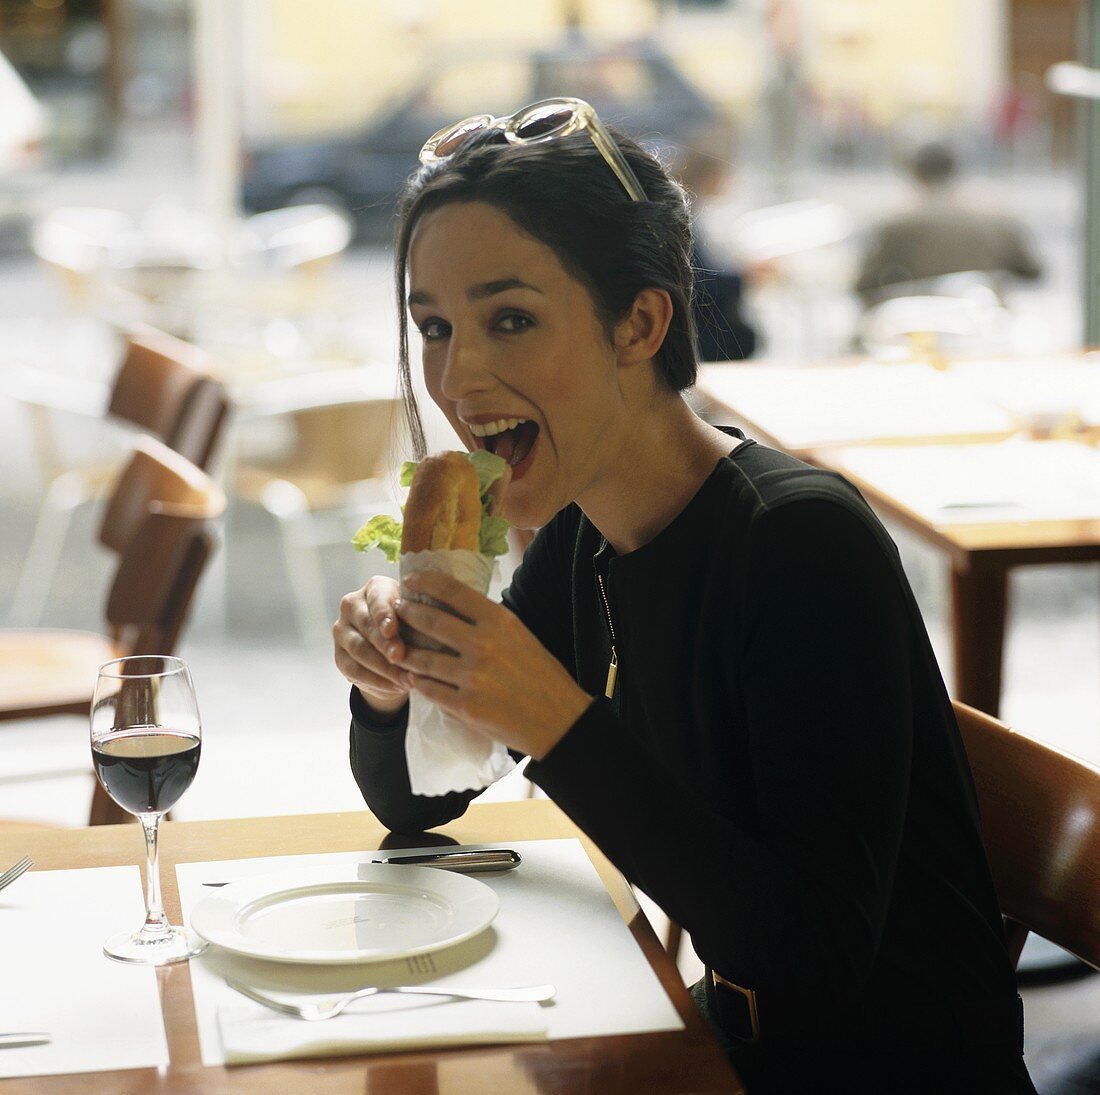 Young woman sitting in restaurant eating baguette sandwich